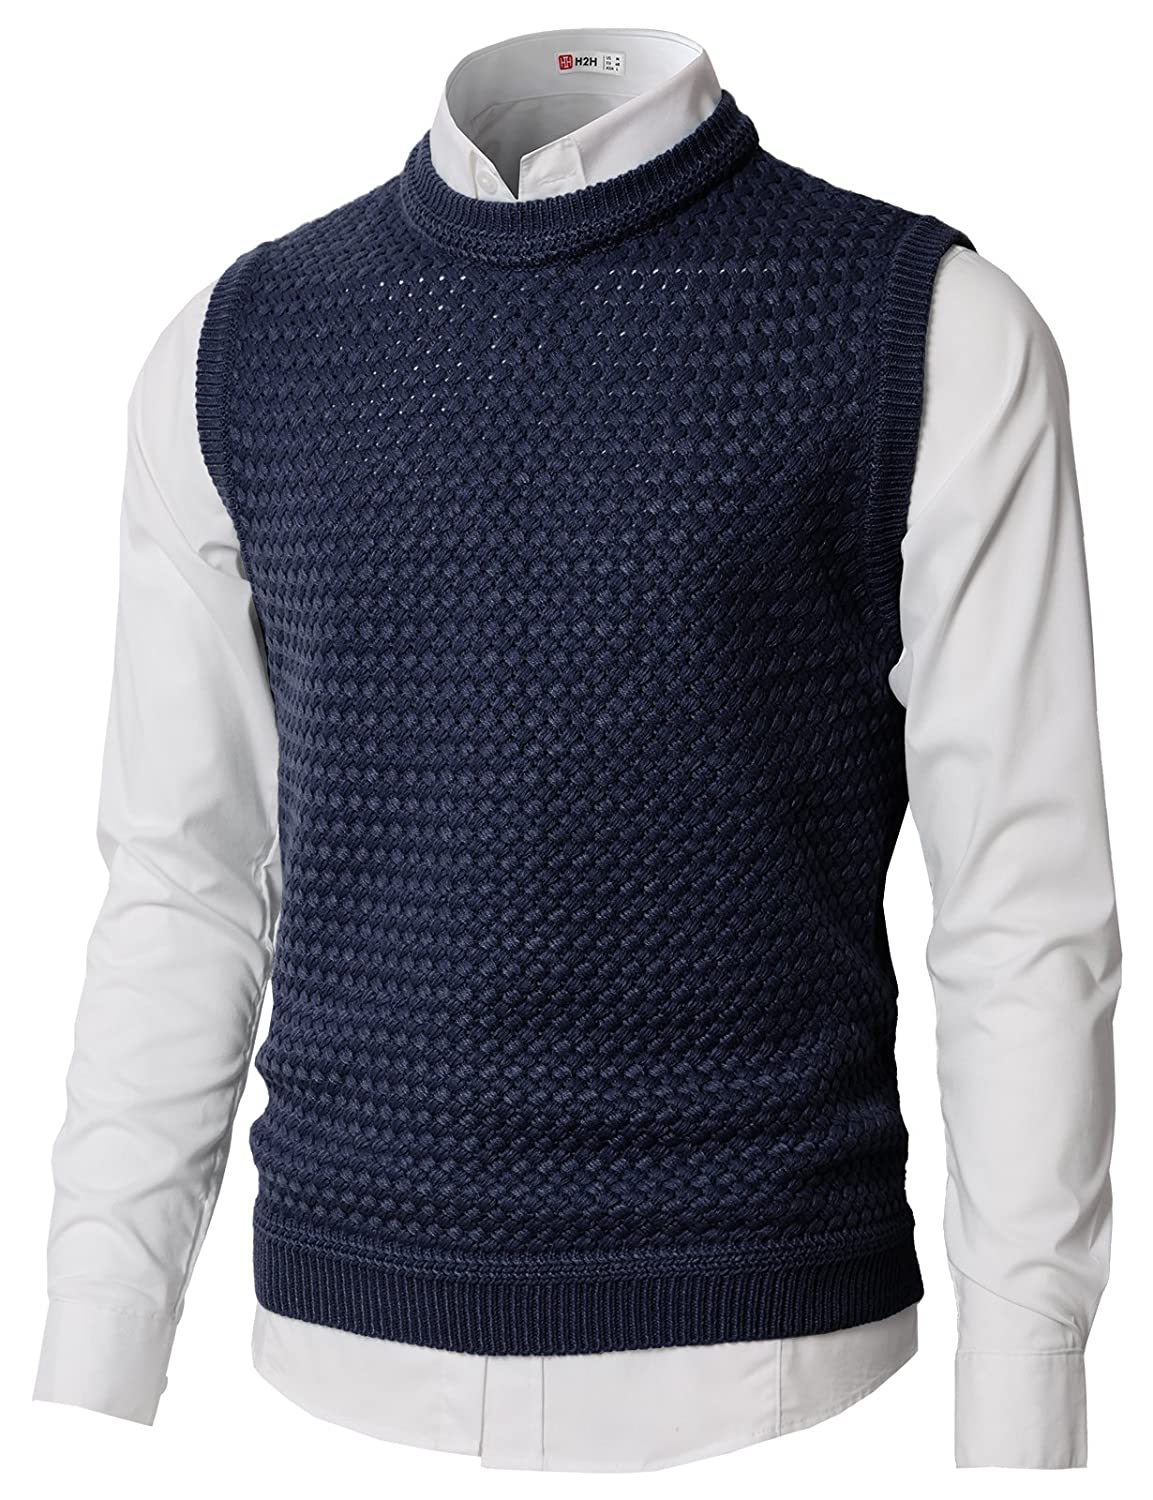 H2H Mens Casual Regular Fit Crew Neck Color Contrast Sweater Vest #KMOV0158